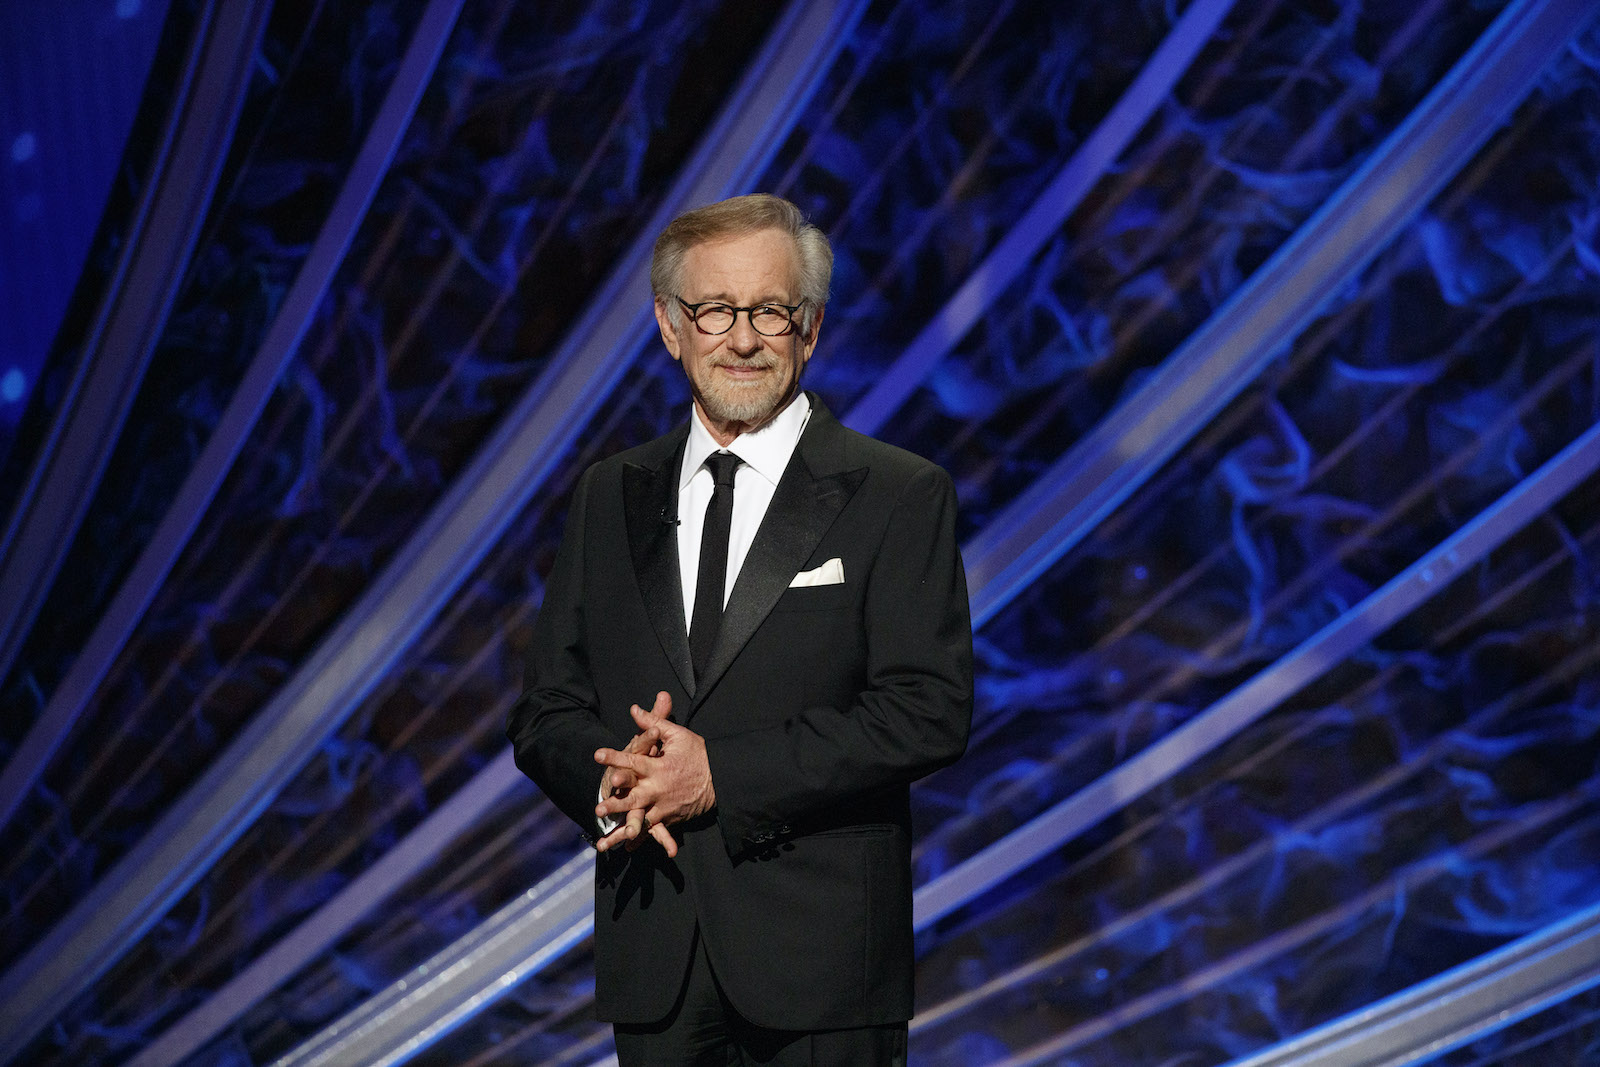 THE OSCARS® - The 92nd Oscars® broadcasts live on Sunday, Feb. 9,2020 at the Dolby Theatre® at Hollywood & Highland Center® in Hollywood and will be televised live on The ABC Television Network at 8:00 p.m. EST/5:00 p.m. PST.  (CRAIG SJODIN via Getty Images) STEVEN SPIELBERG